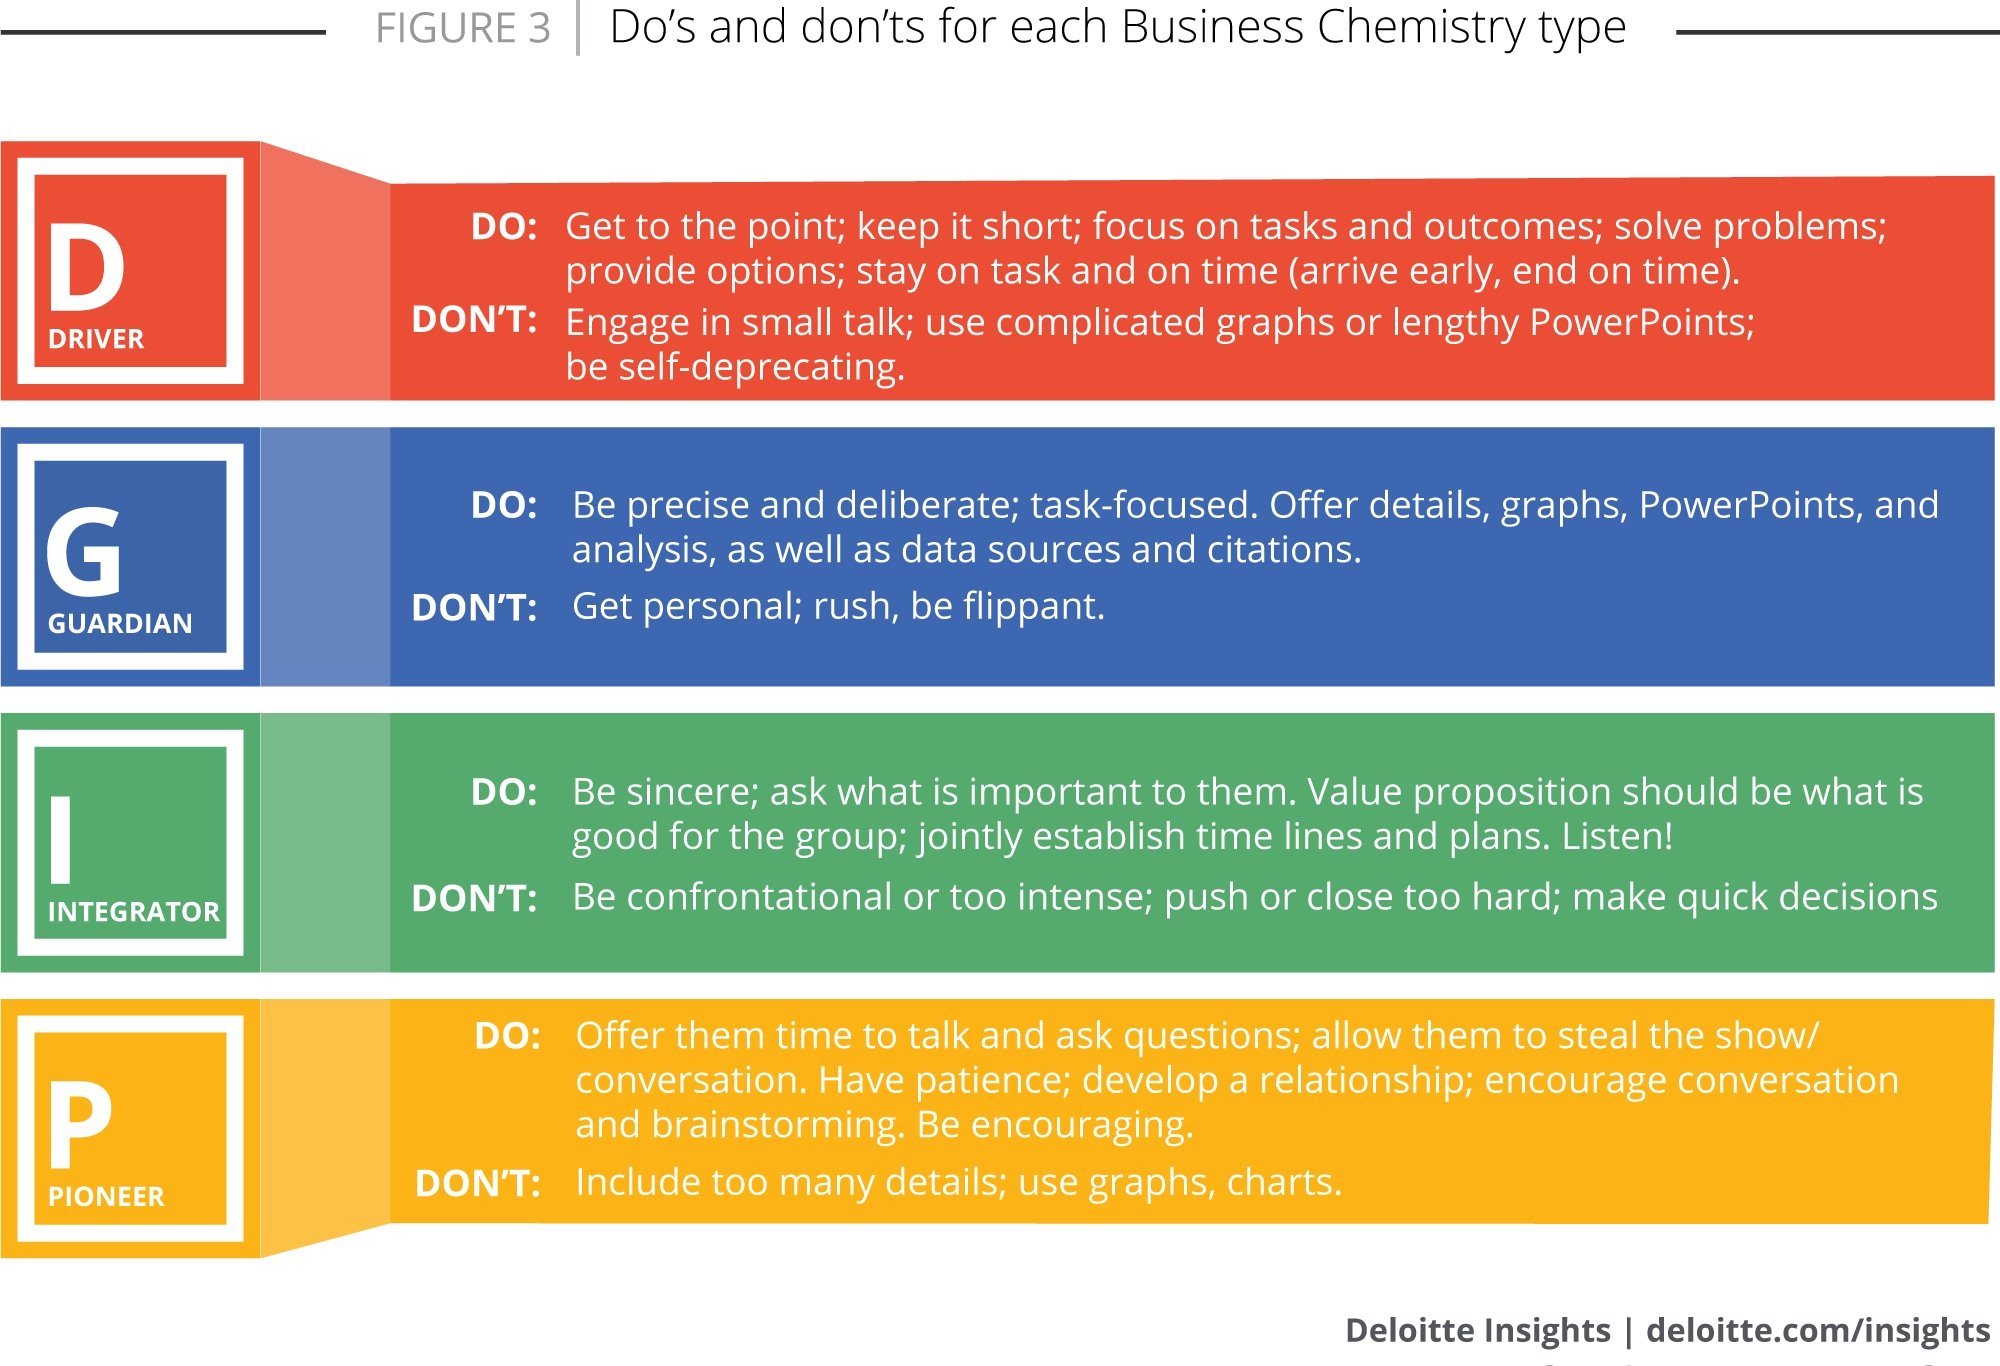 Do's and don'ts for each Business Chemistry type